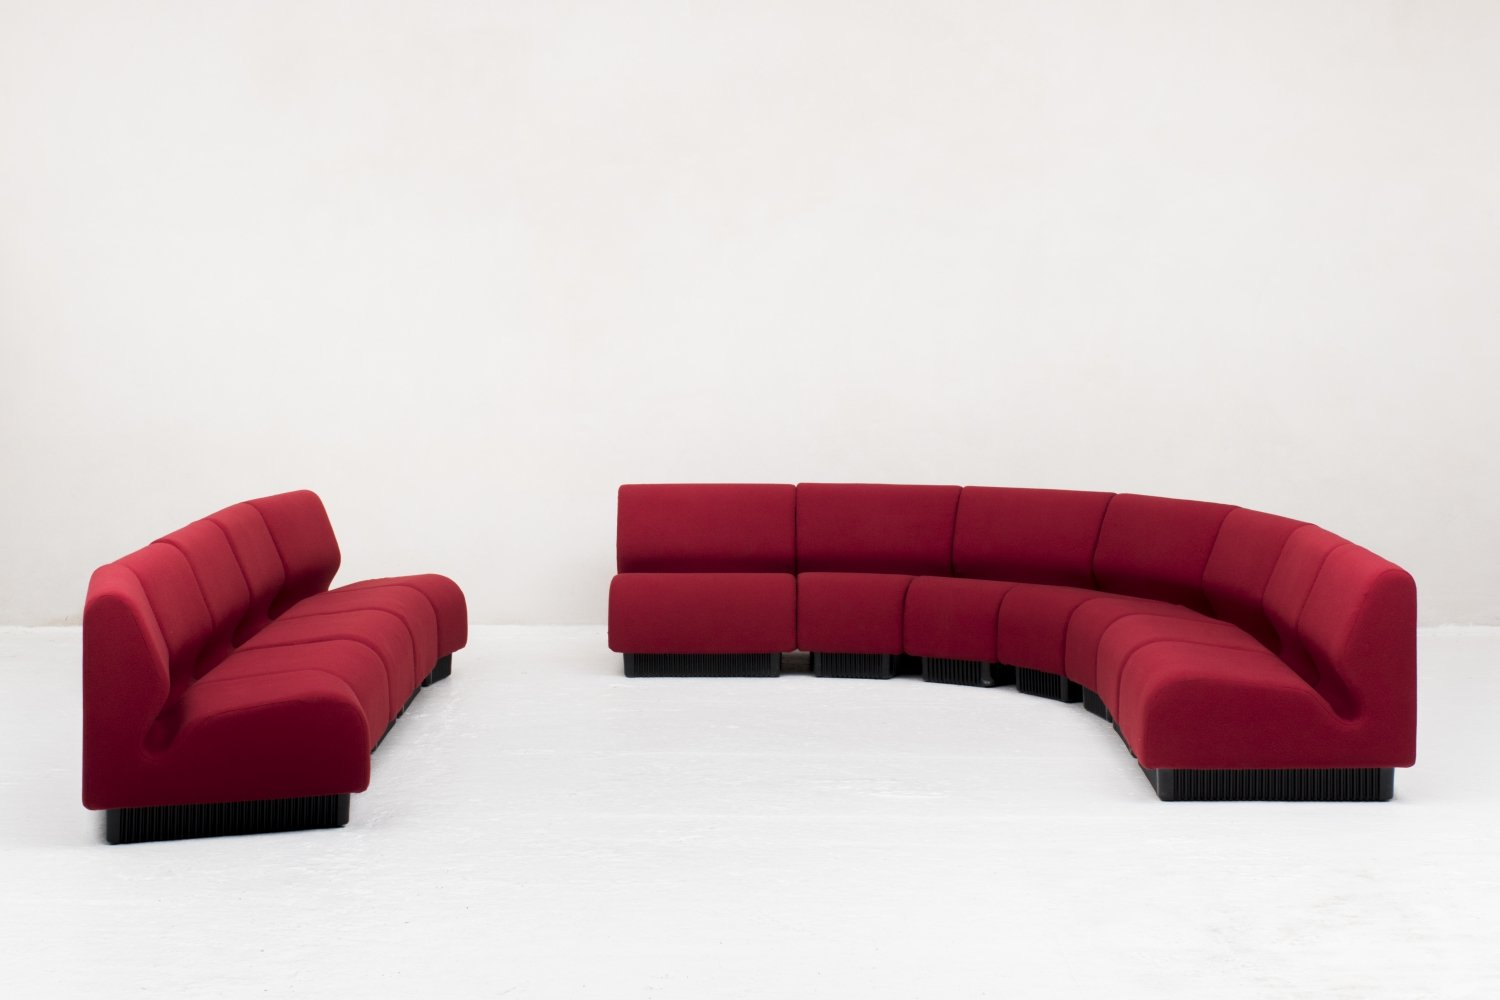 9 Piece Sofa Seating Group By Don